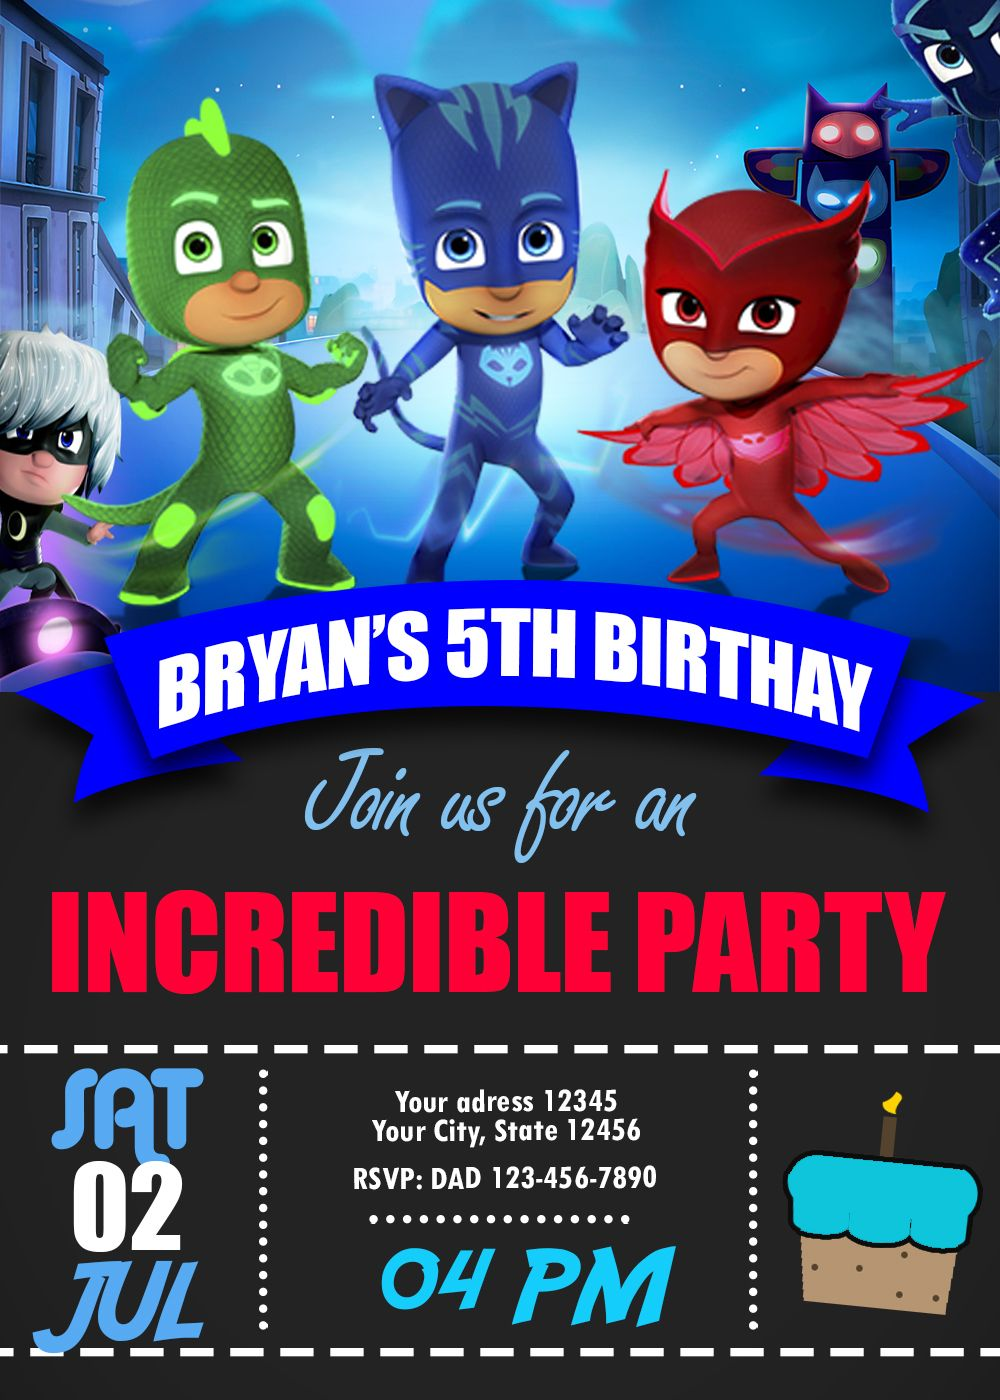 Pin on PJ MASKS BIRTHDAY PARTY INVITATION FOR BOY